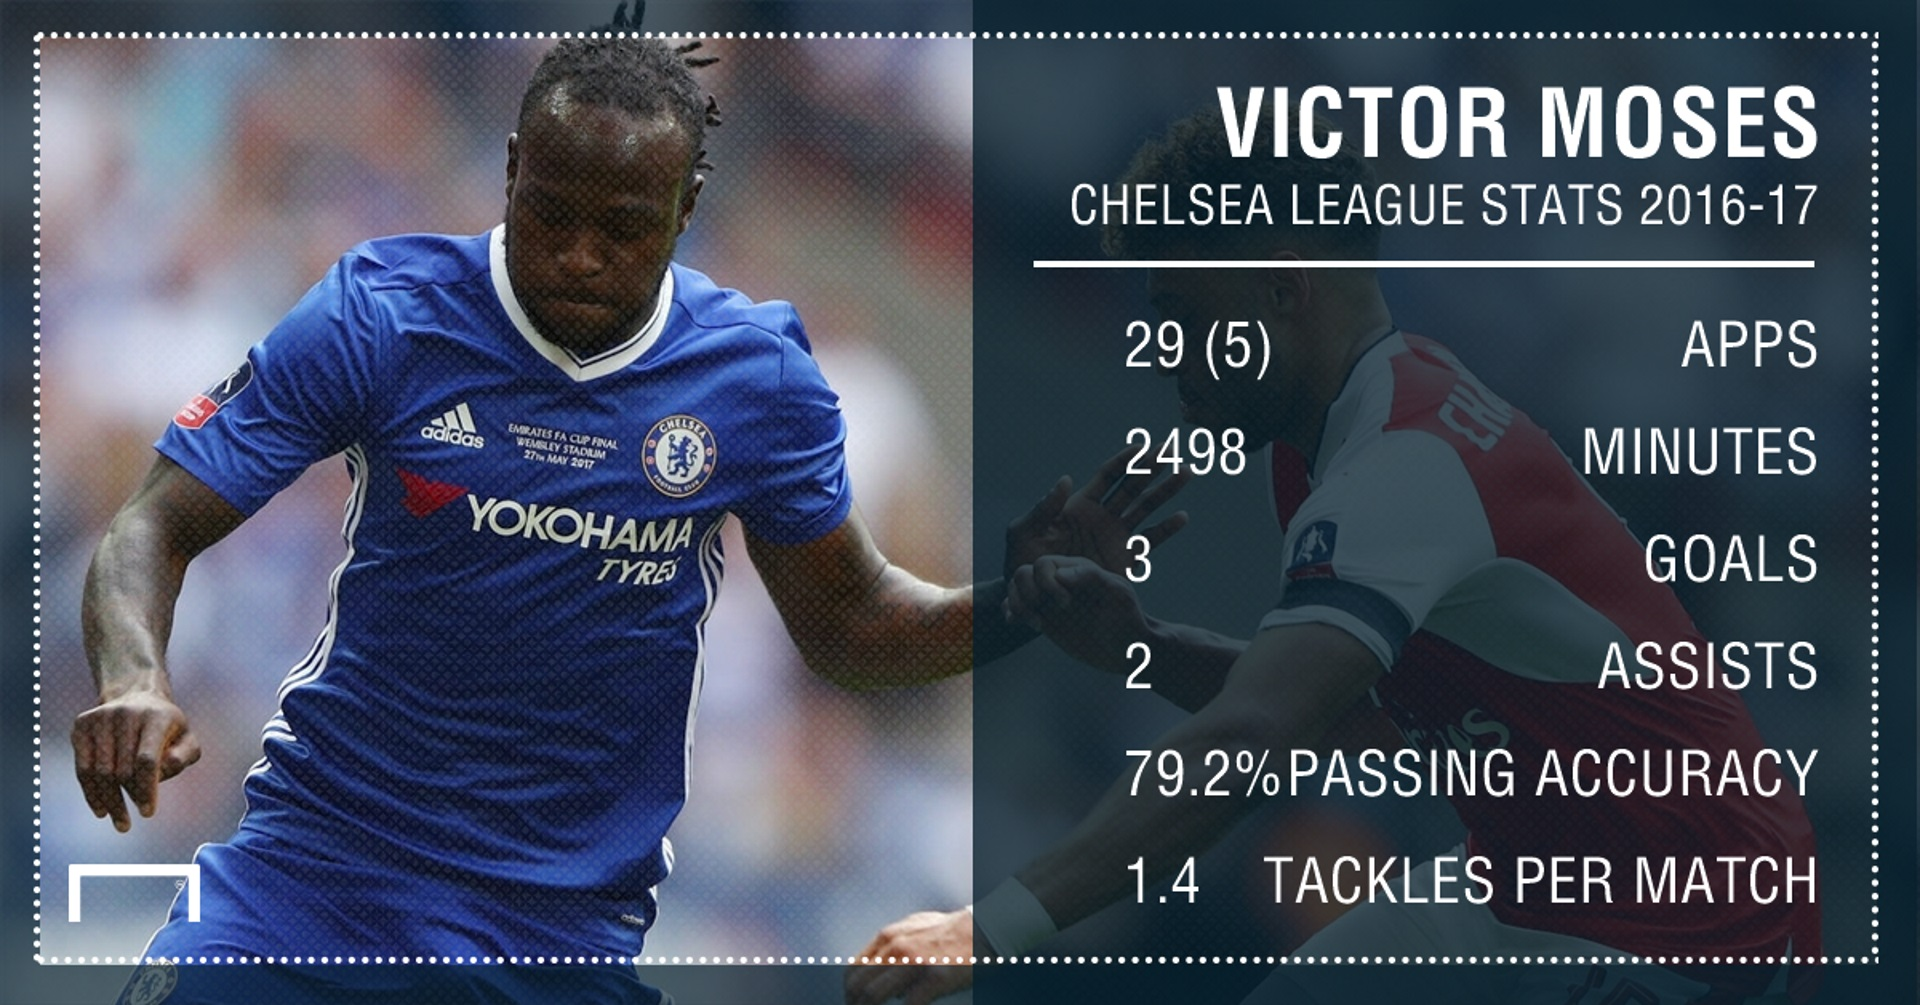 Victor Moses stats